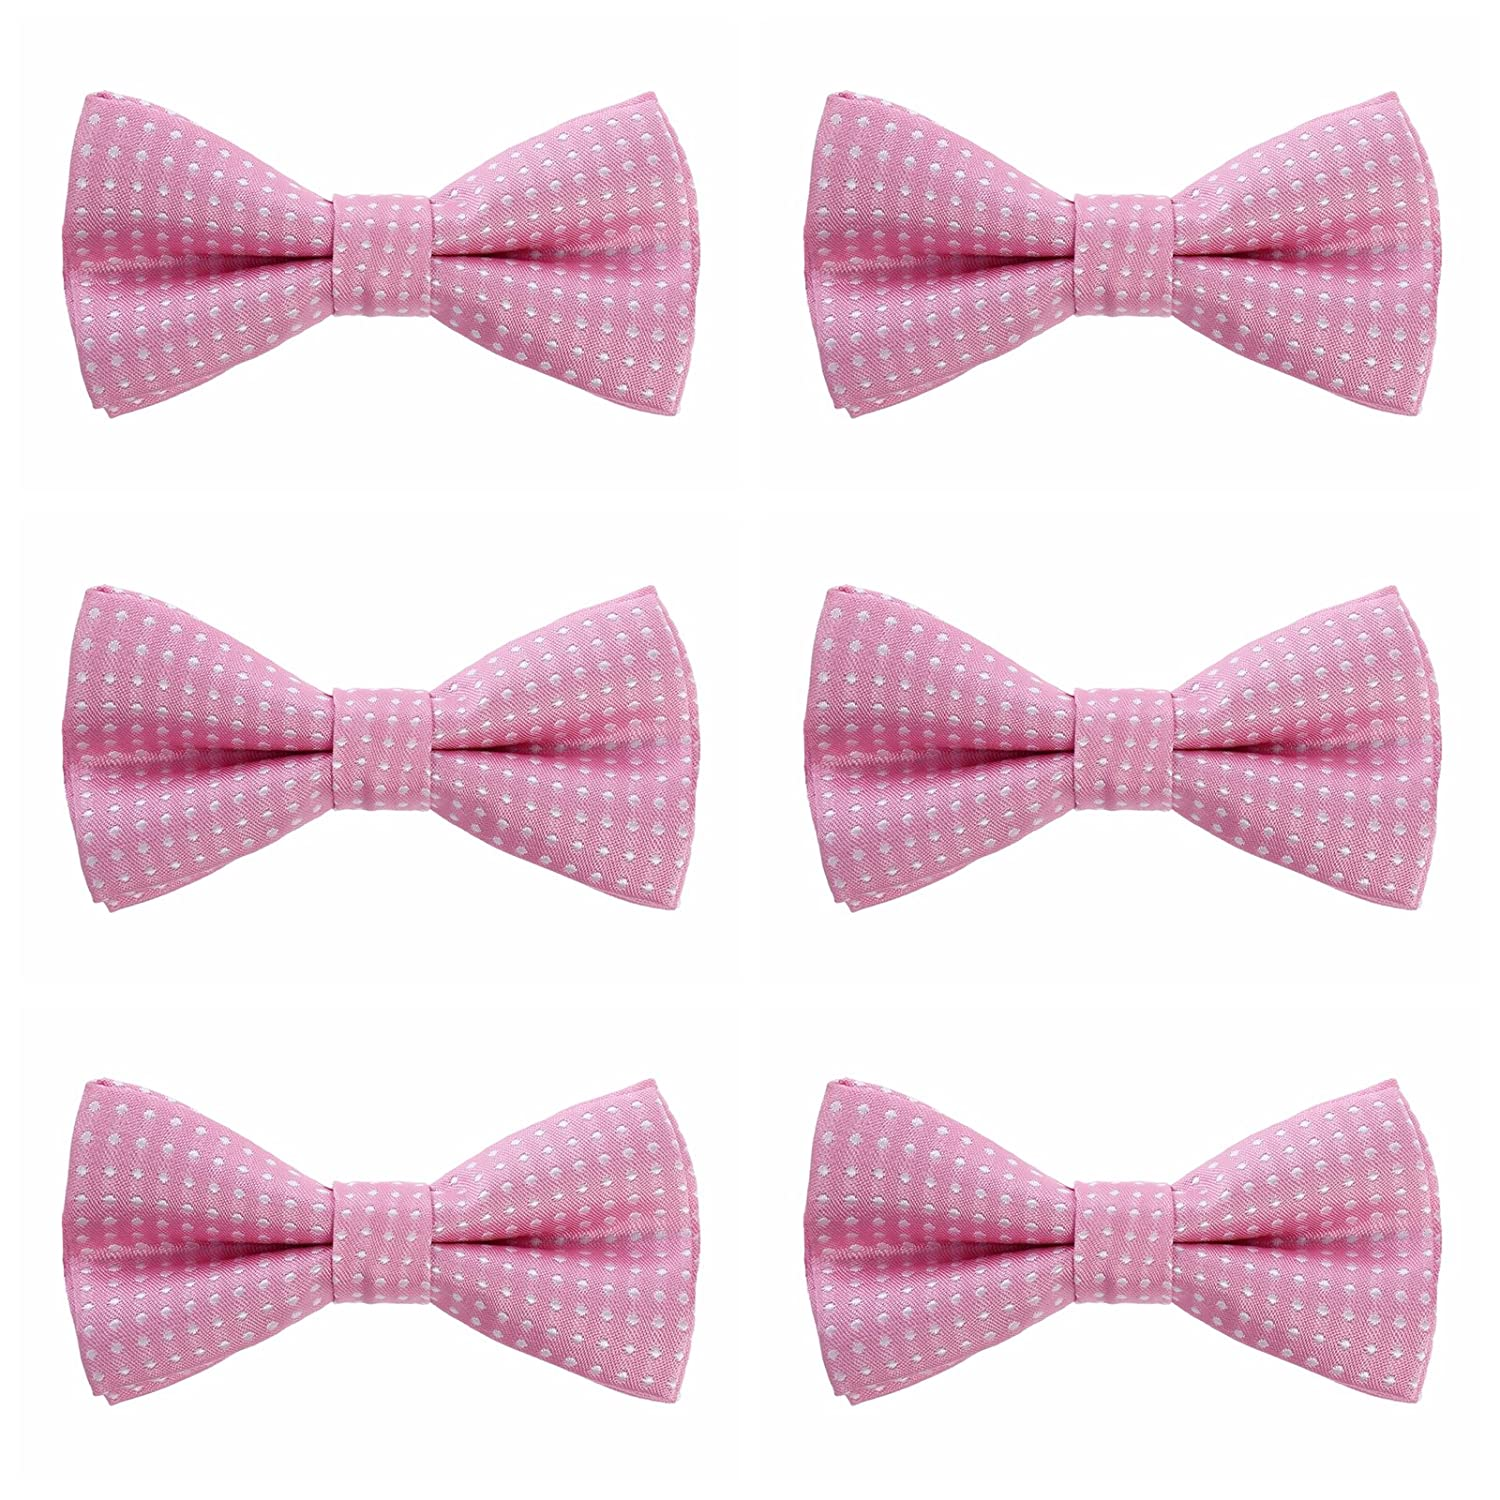 Boys Polka Dots Bow Ties 6 Pack of Double Layer Adjustable Pre Tied Bowties Pink